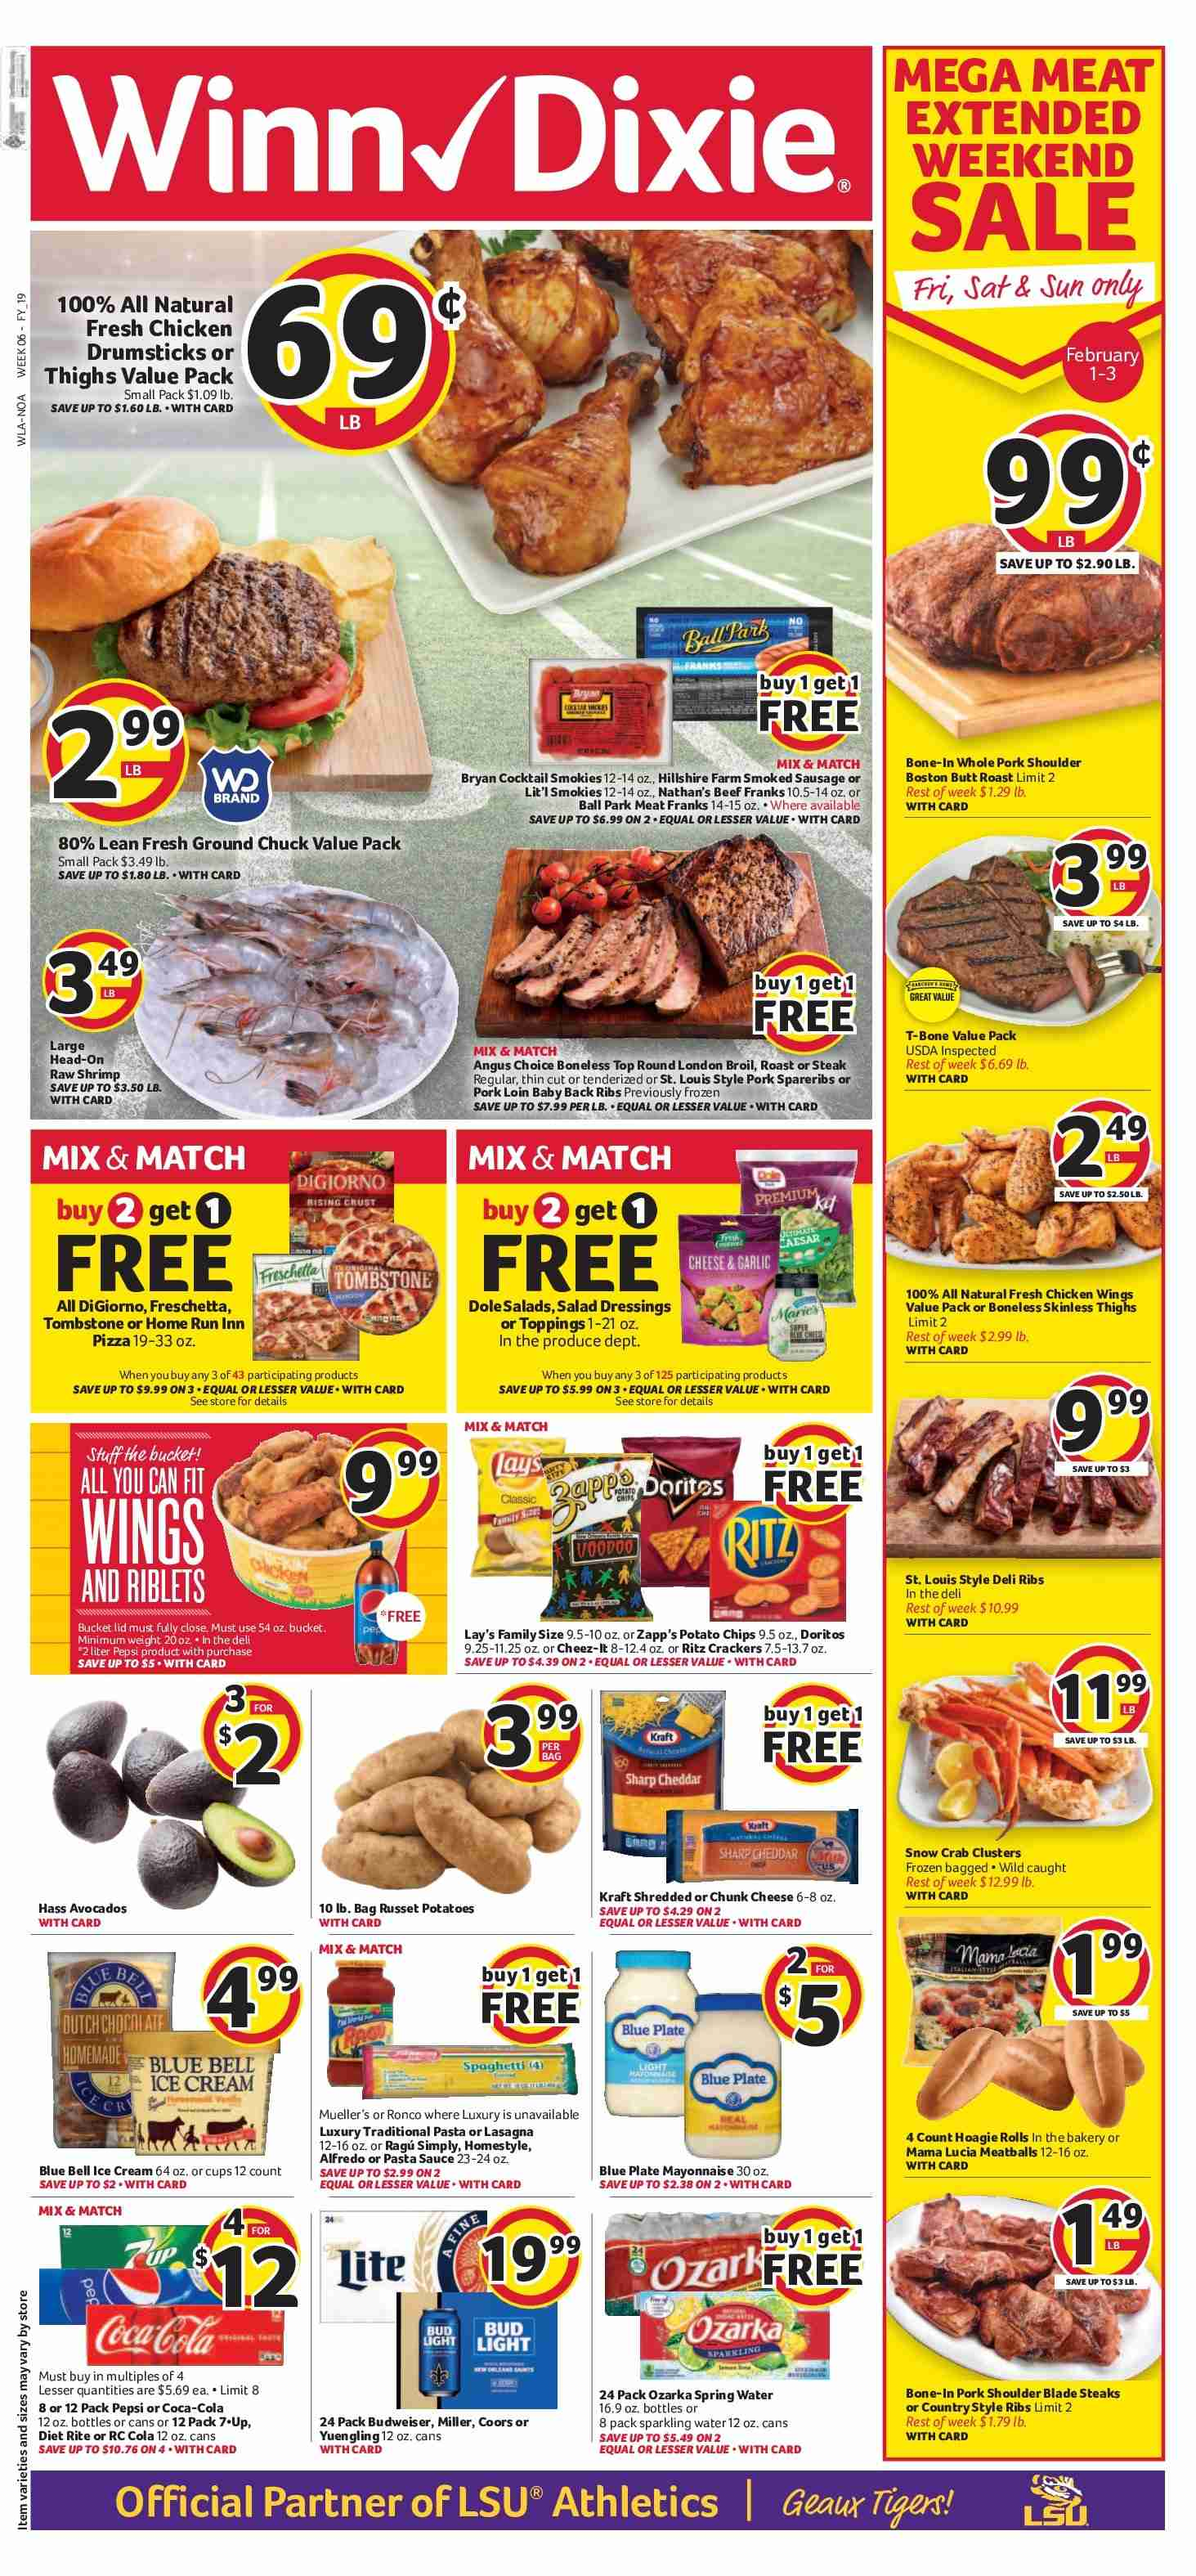 Winn Dixie Flyer - 01.30.2019 - 02.05.2019 - Sales products - Budweiser, Bud Light, Coors, garlic, russet potatoes, potatoes, rolls, chicken, beef meat, ground chuck, pork loin, pork meat, pork shoulder, crab, pizza, meatballs, Hillshire Farm, sausage, smoked sausage, cheese, mayonnaise, sauce, ice cream, crackers, alfredo sauce, pasta sauce, Coca-Cola, Pepsi, spring water, sparkling water, water, ribs. Page 1.